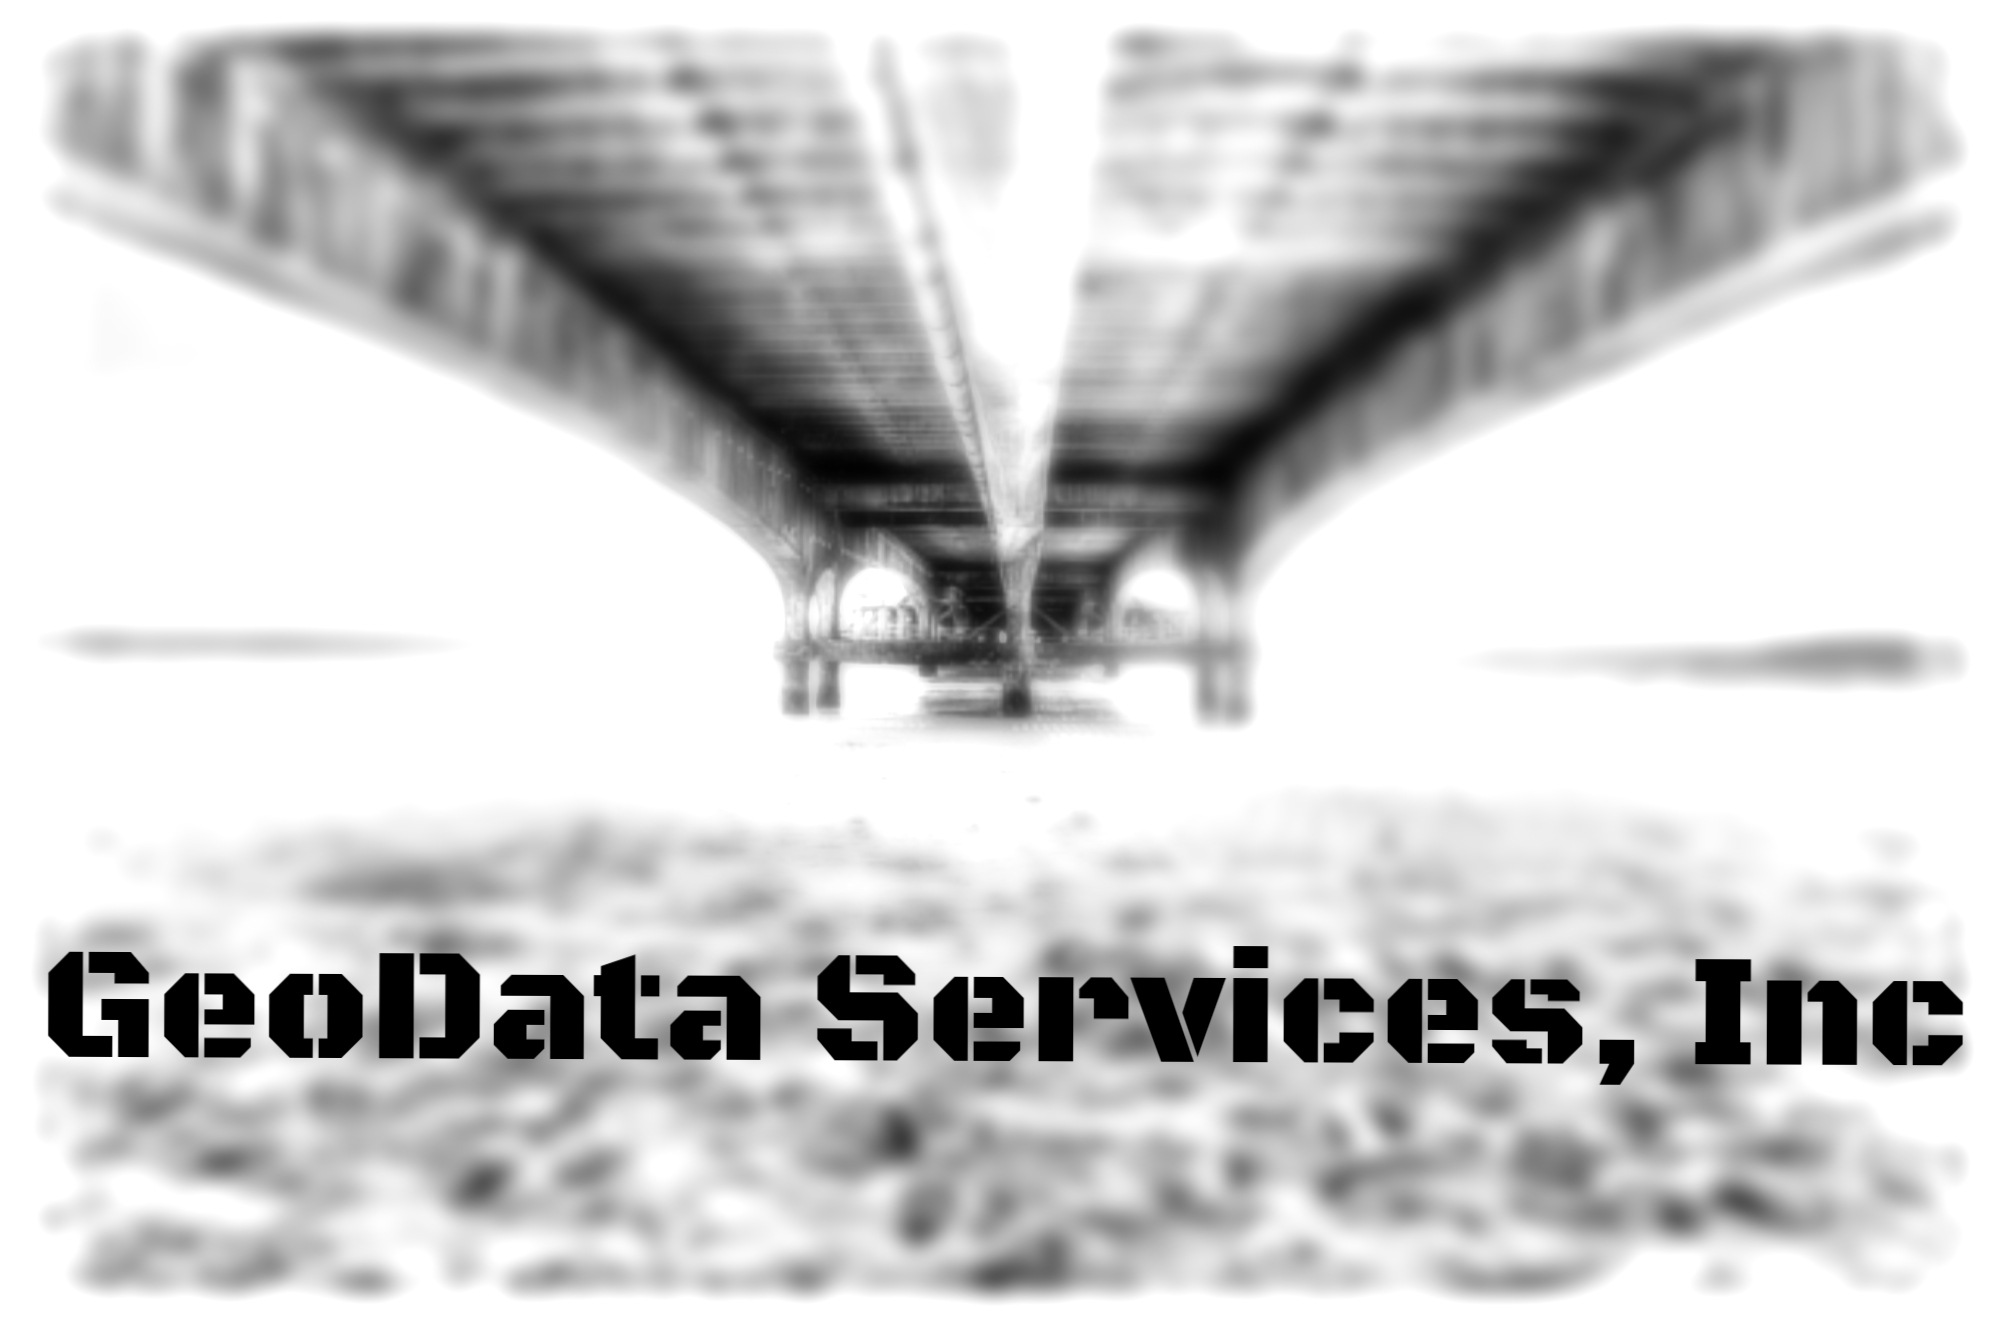 <h1>GeoData Services, Inc.</h1> <h3>727-447-1763 | geo@geodatasurveying.com</h3>